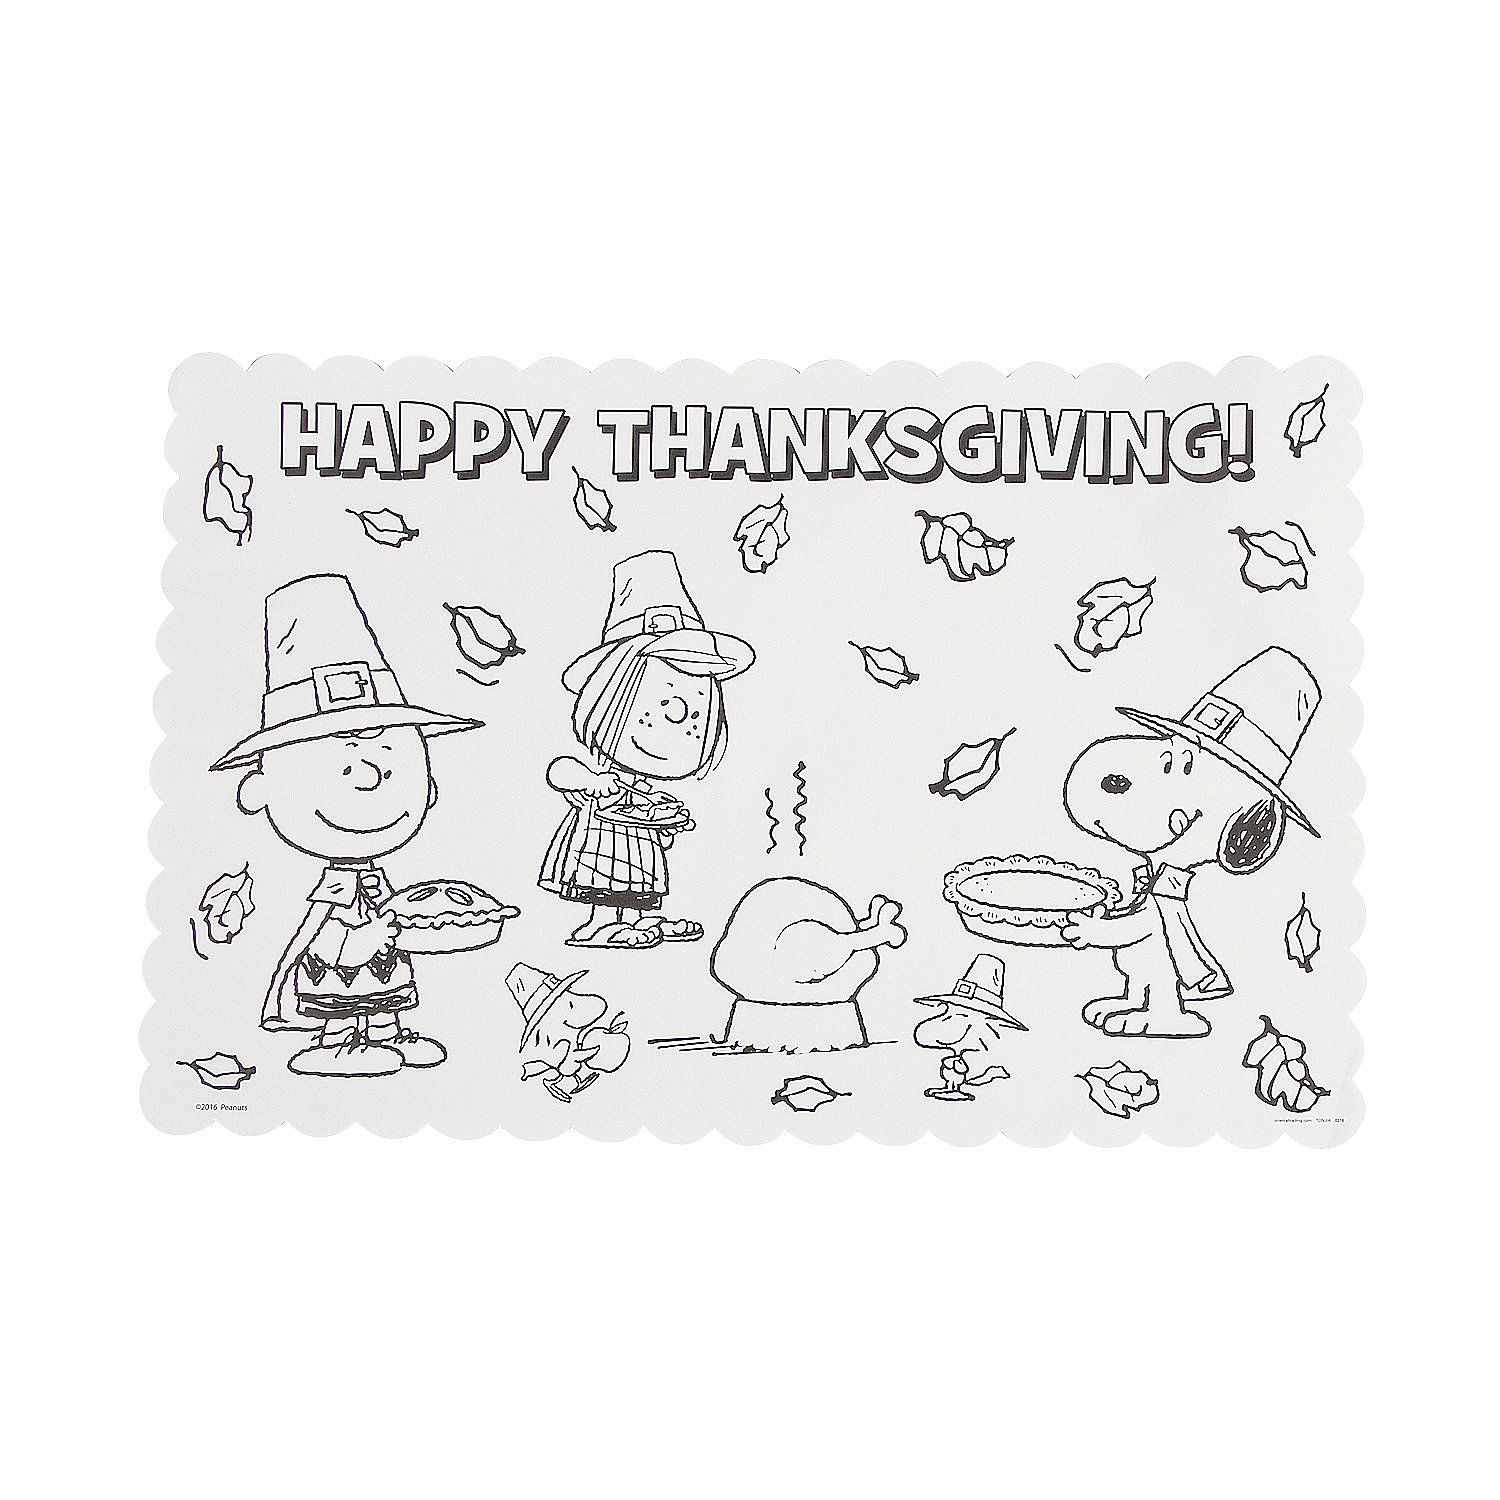 Peanuts Color Your Own Thanksgiving Placemats Thanksgiving Placemats Thanksgiving Placemats Preschool Thanksgiving Arts And Crafts